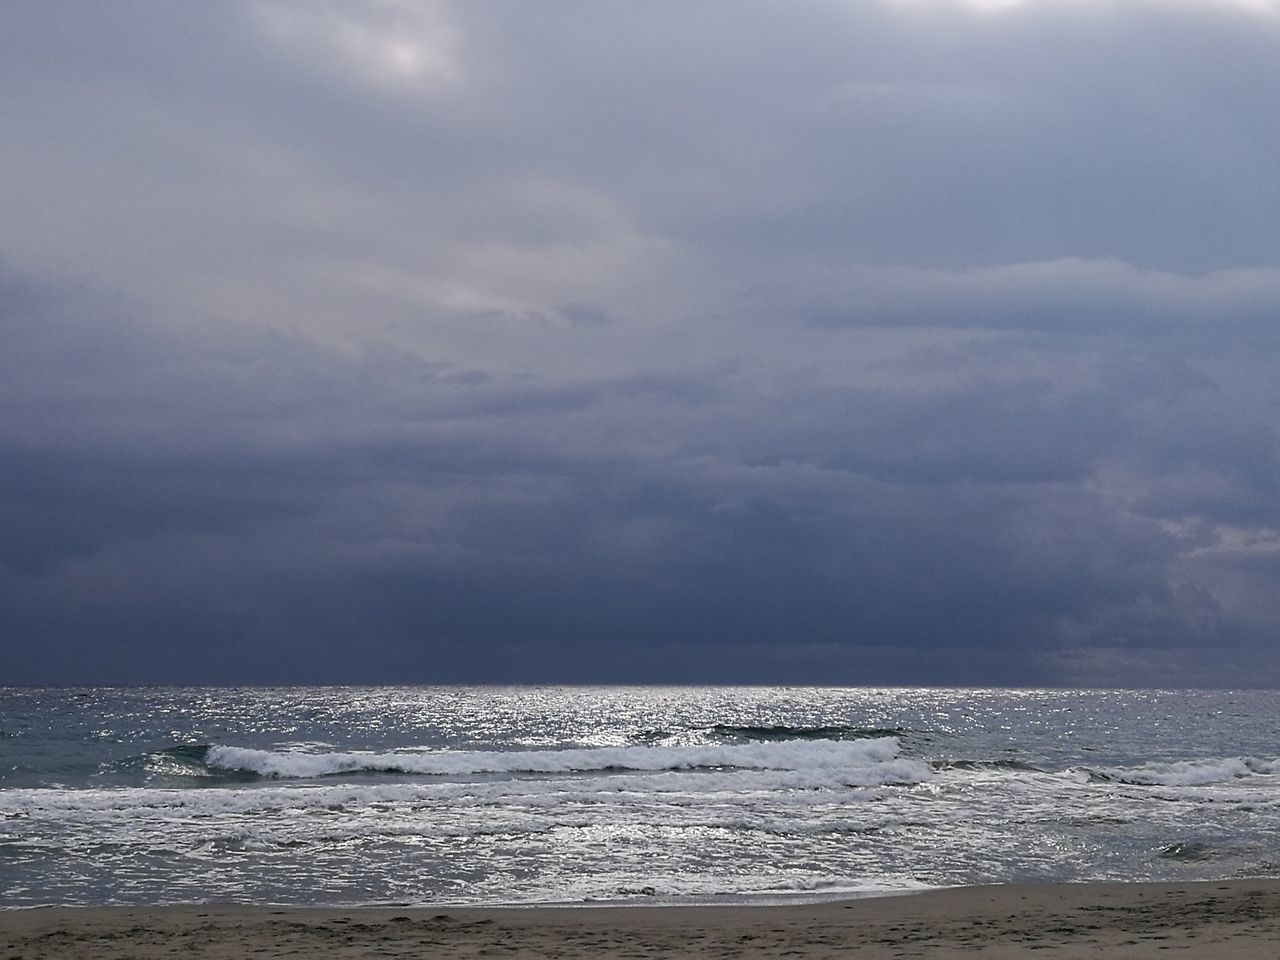 sea, water, horizon over water, beauty in nature, scenics, sky, nature, tranquility, beach, cloud - sky, tranquil scene, outdoors, no people, wave, day, storm cloud